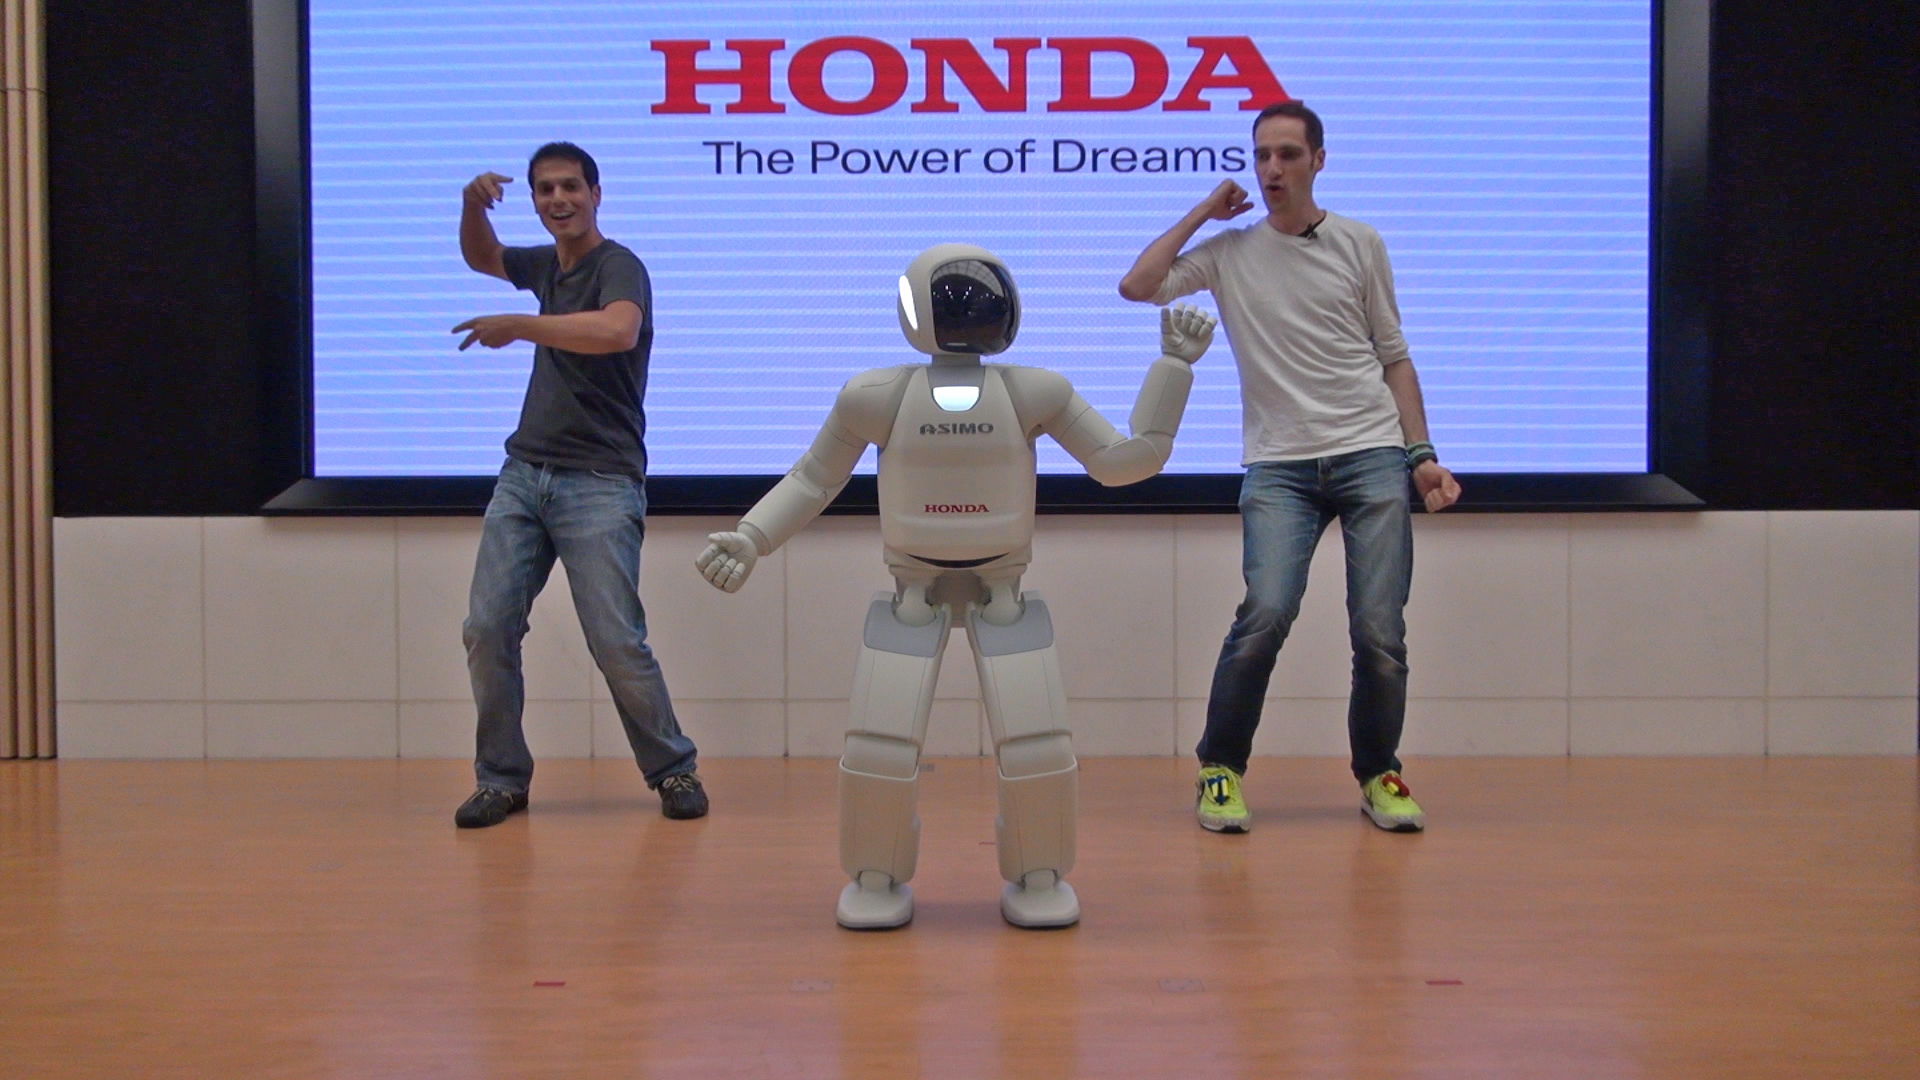 Meet Asimo at Tokyo's REAL Robot Show - for Free